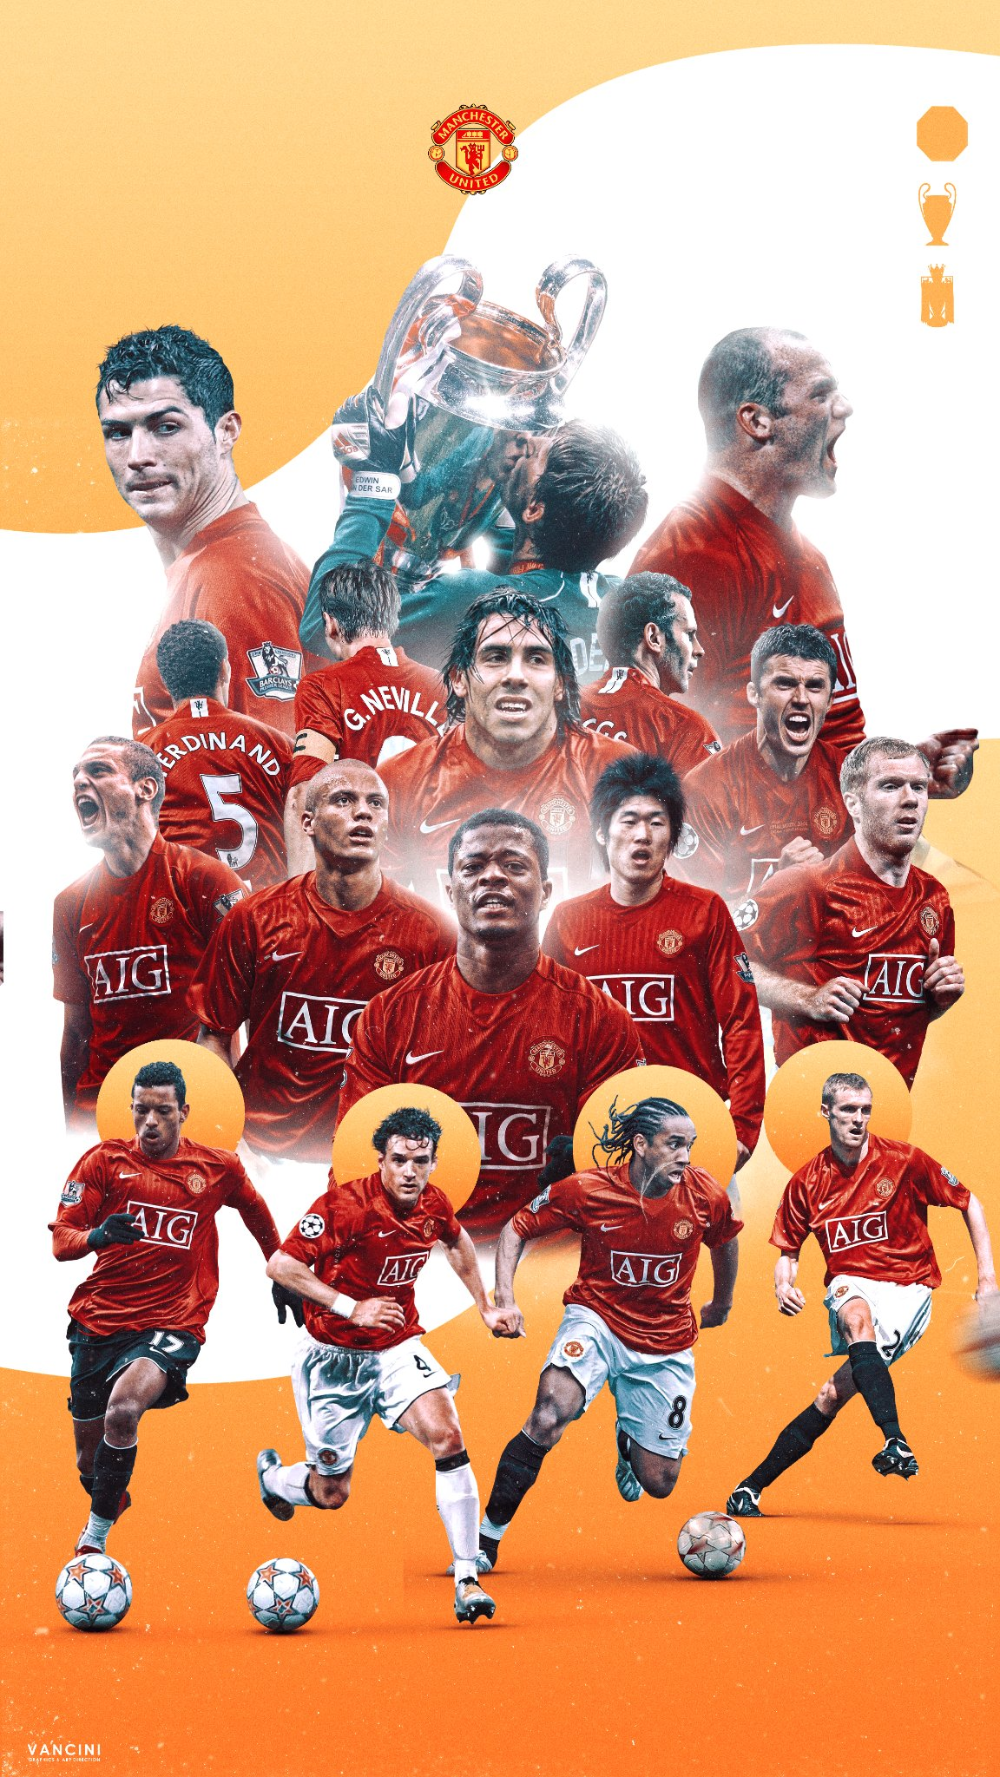 Vancini On Twitter In 2020 Manchester United Legends Manchester United Poster Manchester United Team